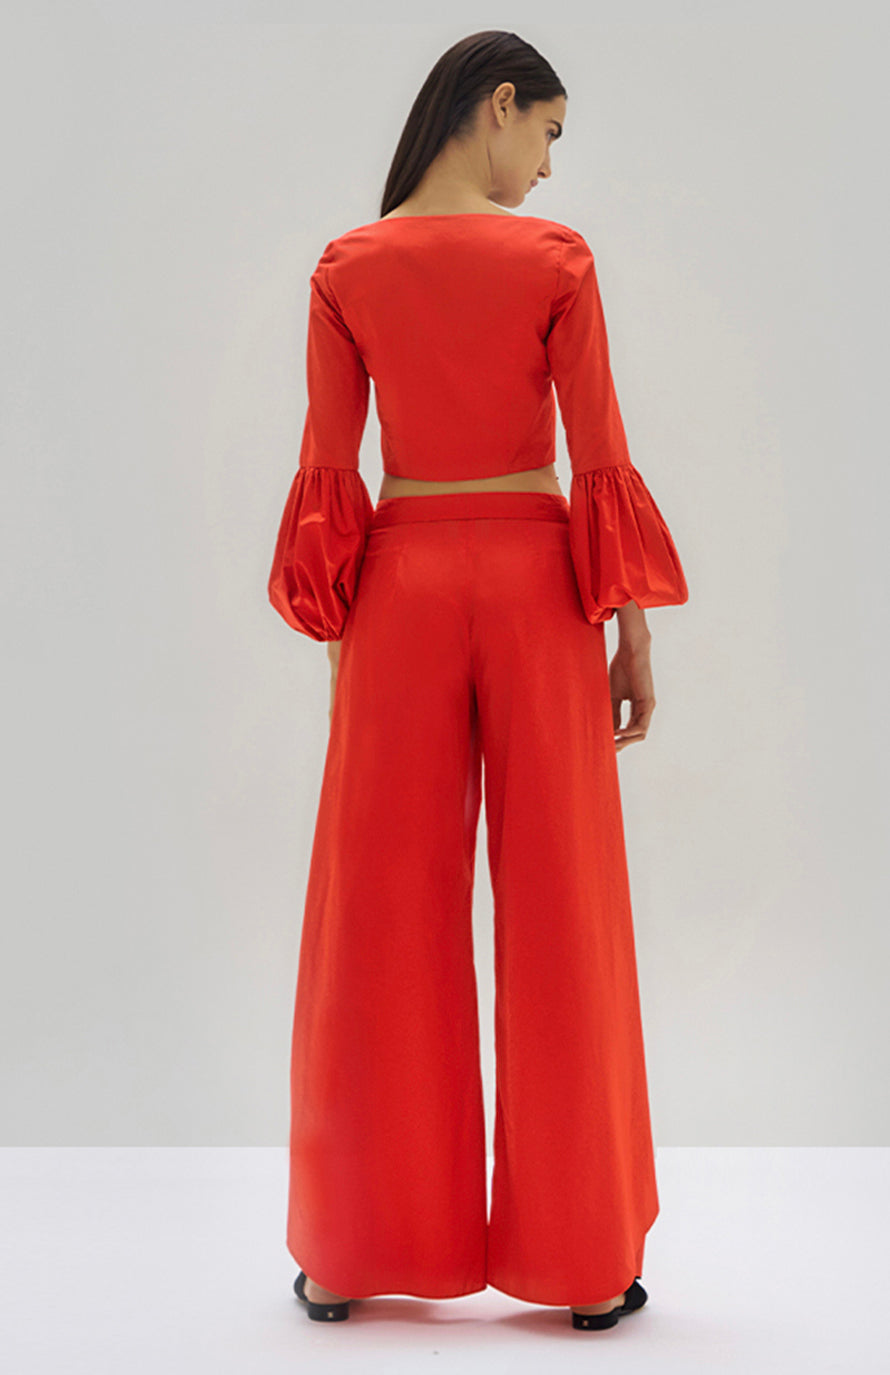 Alexis Ottera Top and Osborne Pant Scarlet Red - Rear View